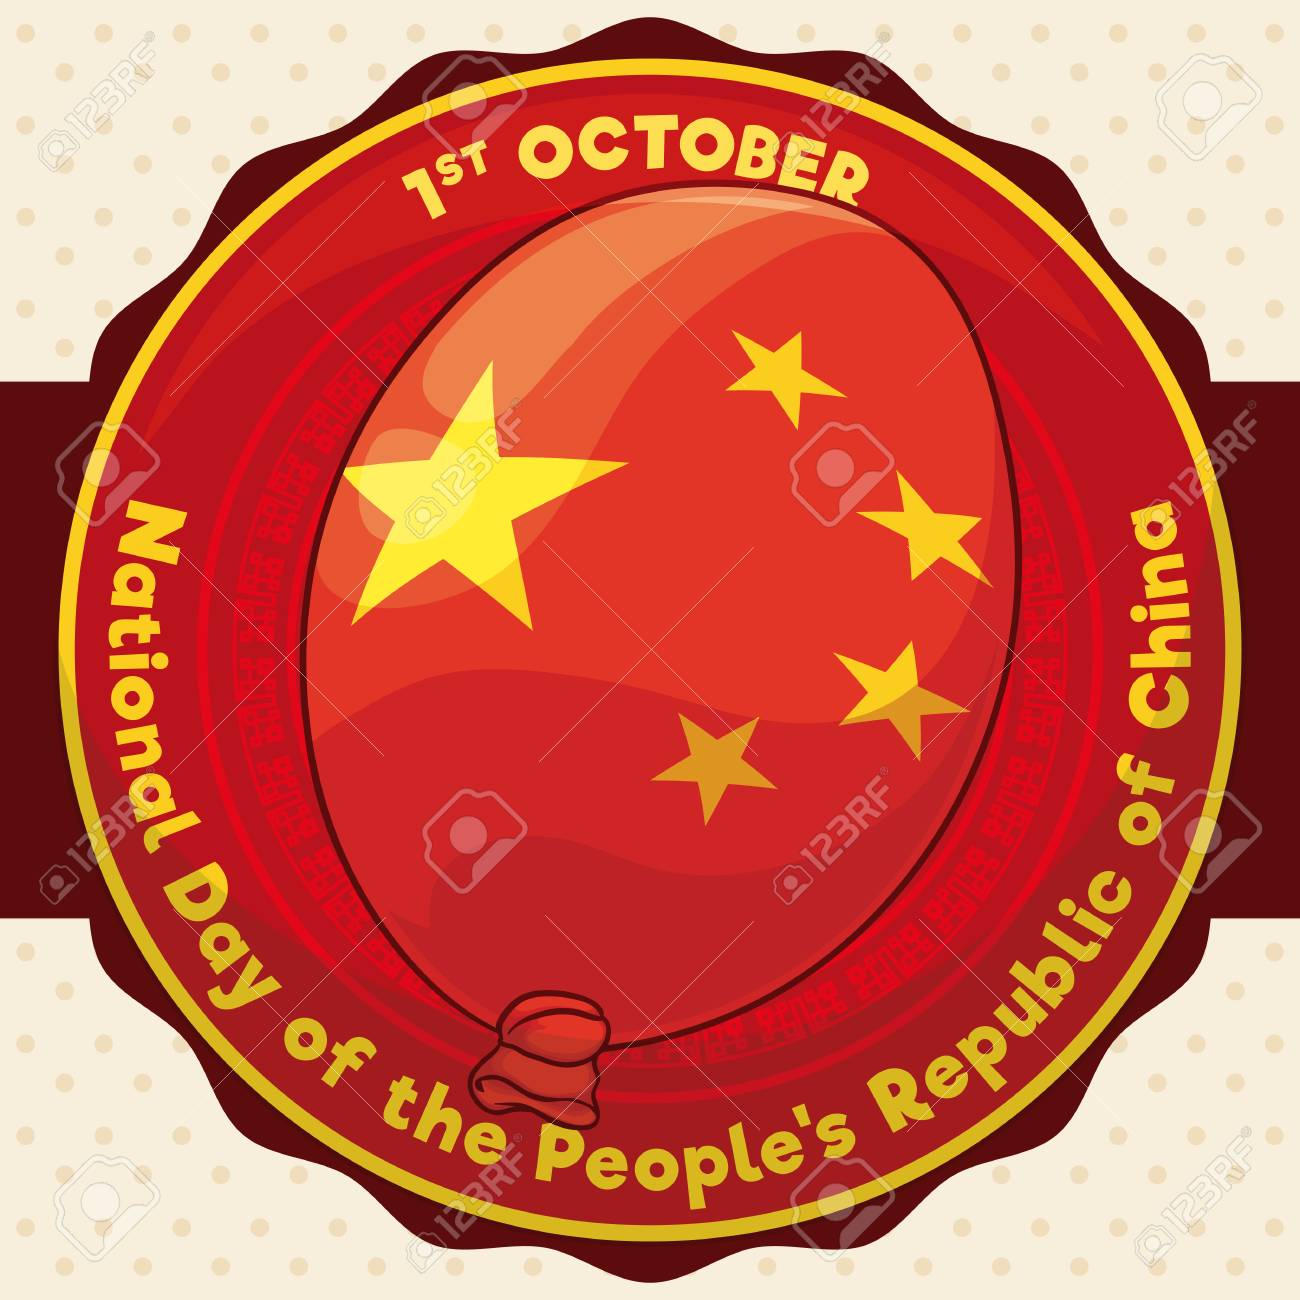 Poster with round button with a red balloon like Chinese flag